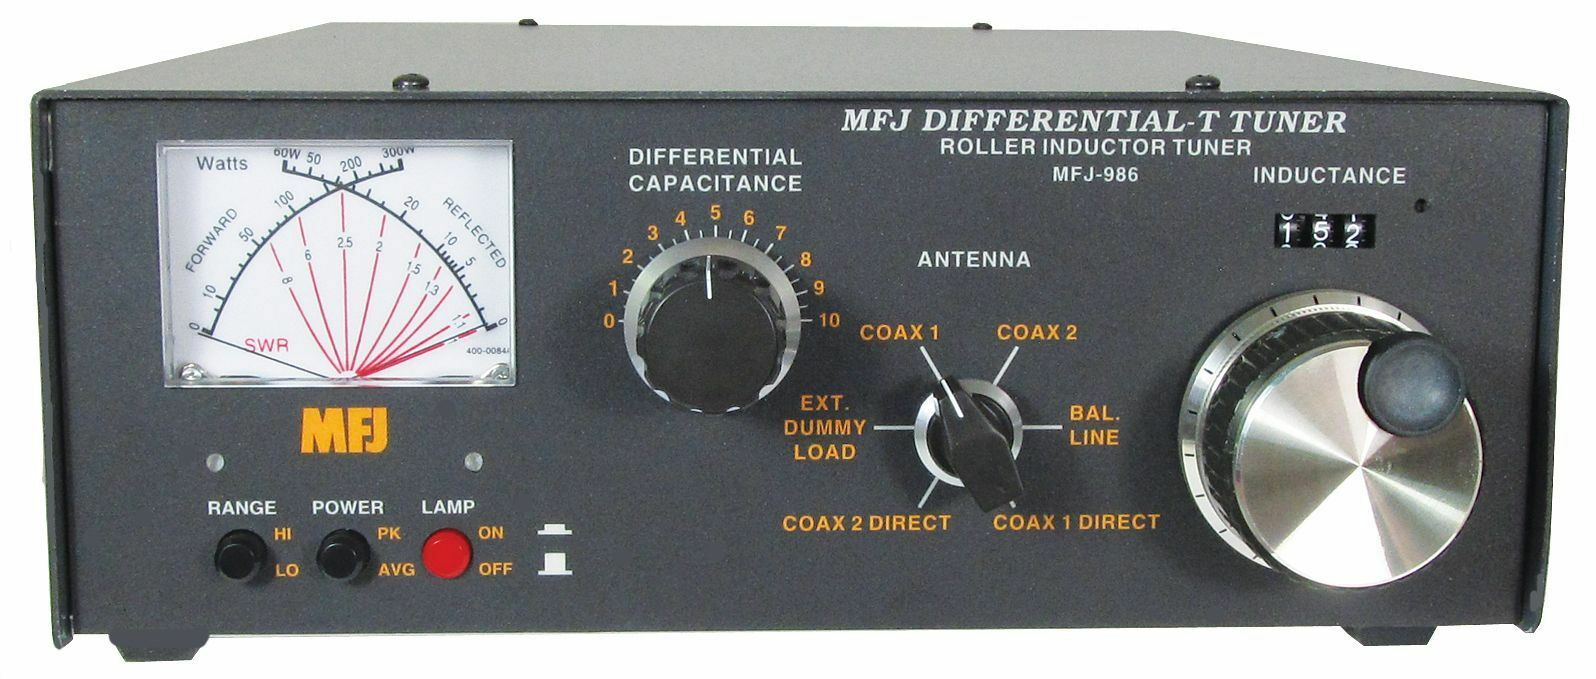 MFJ-986 HF (1.8-30MHz) Manual Roller Tuner w/ SWR/Wattmeter, Handles 3KW. Buy it now for 449.95